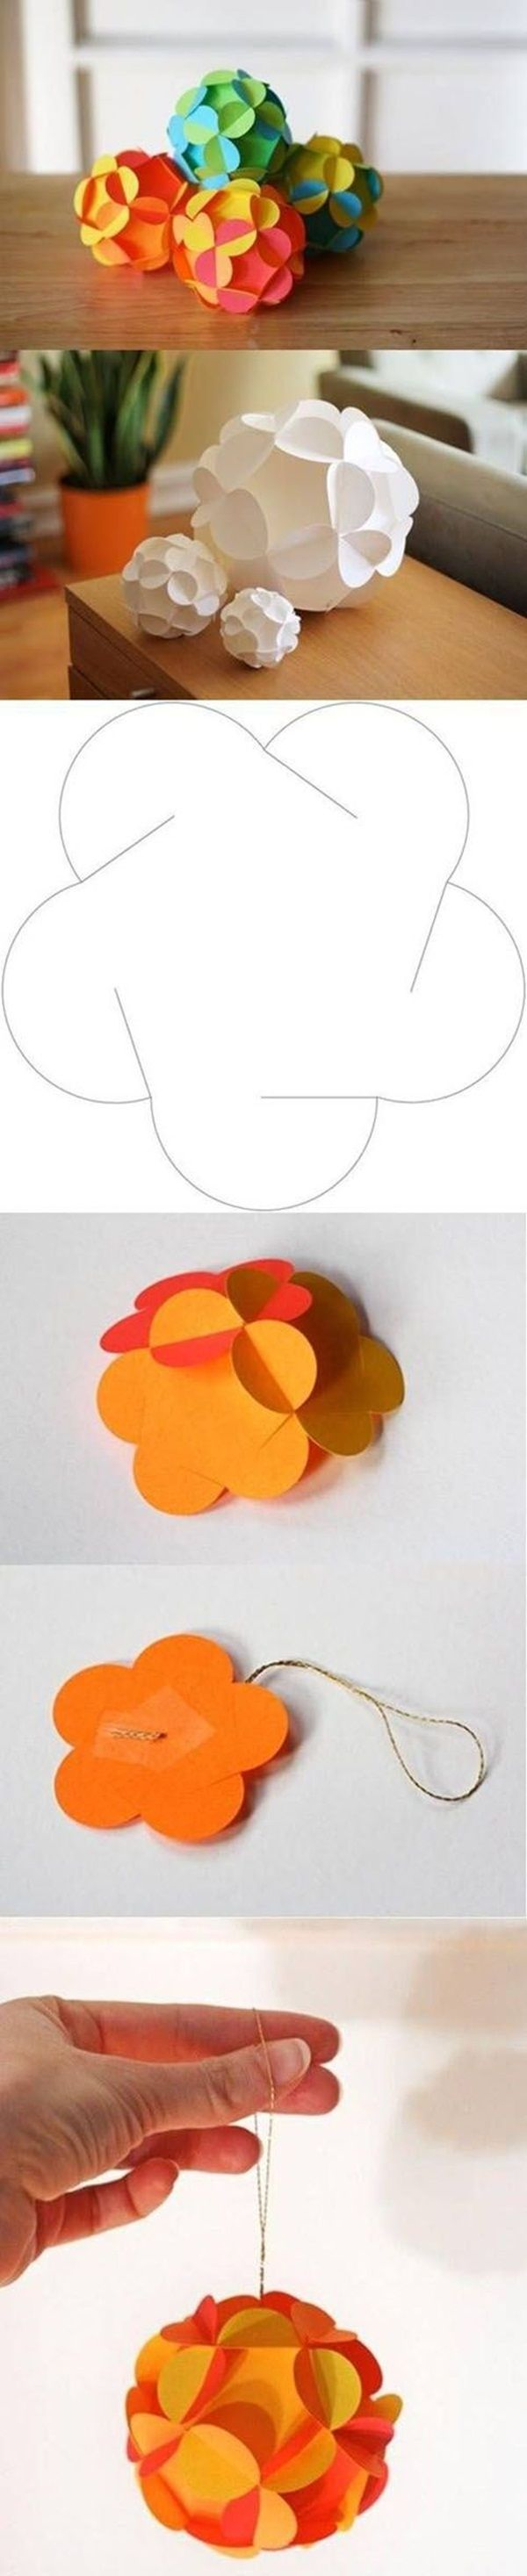 Paper Craft Ideas5